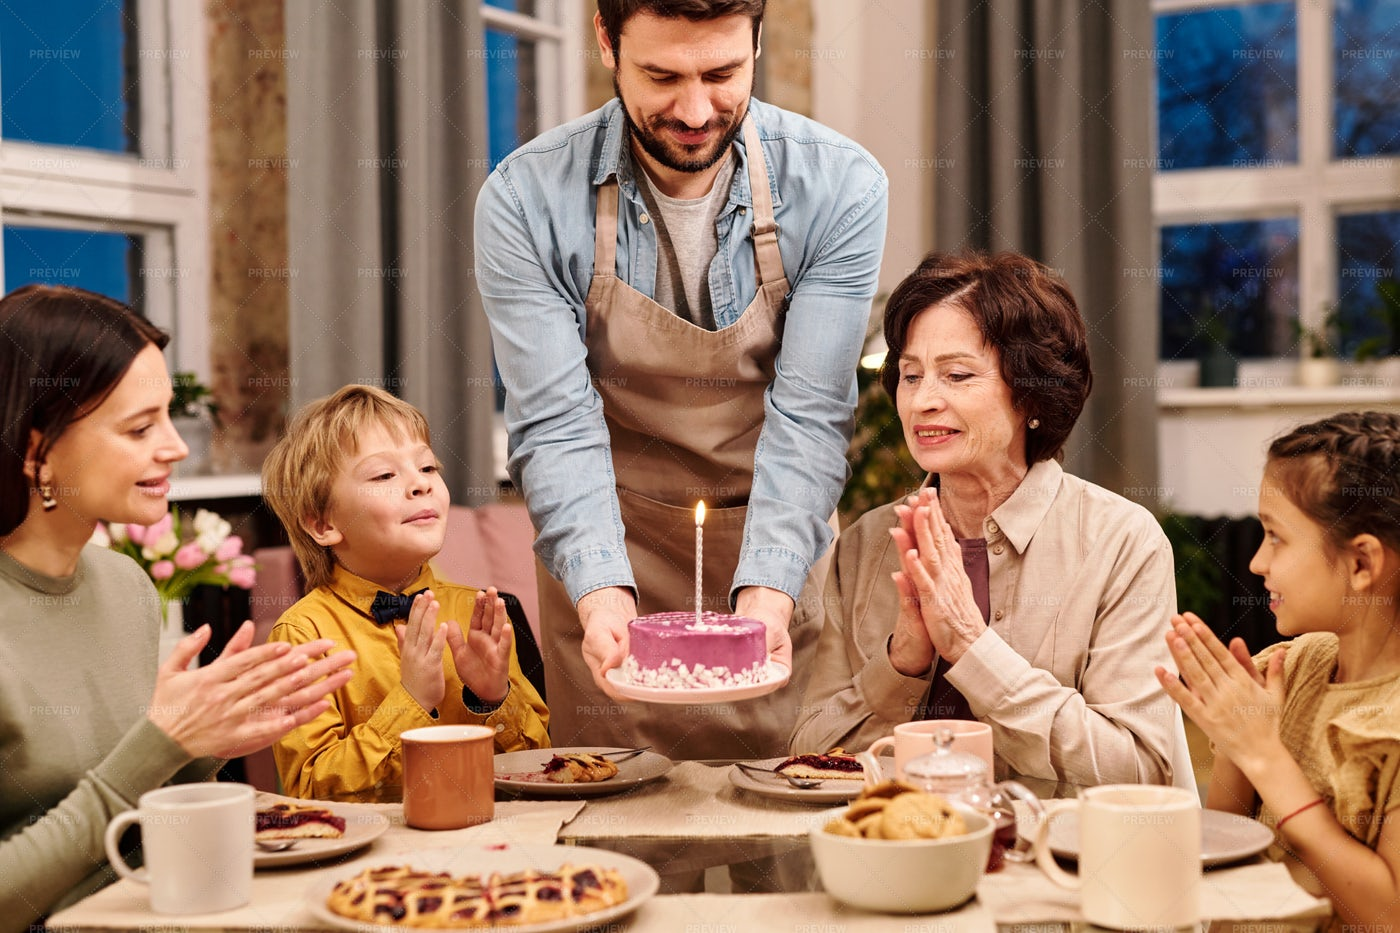 Young Man Putting Birthday Cake On Table: Stock Photos